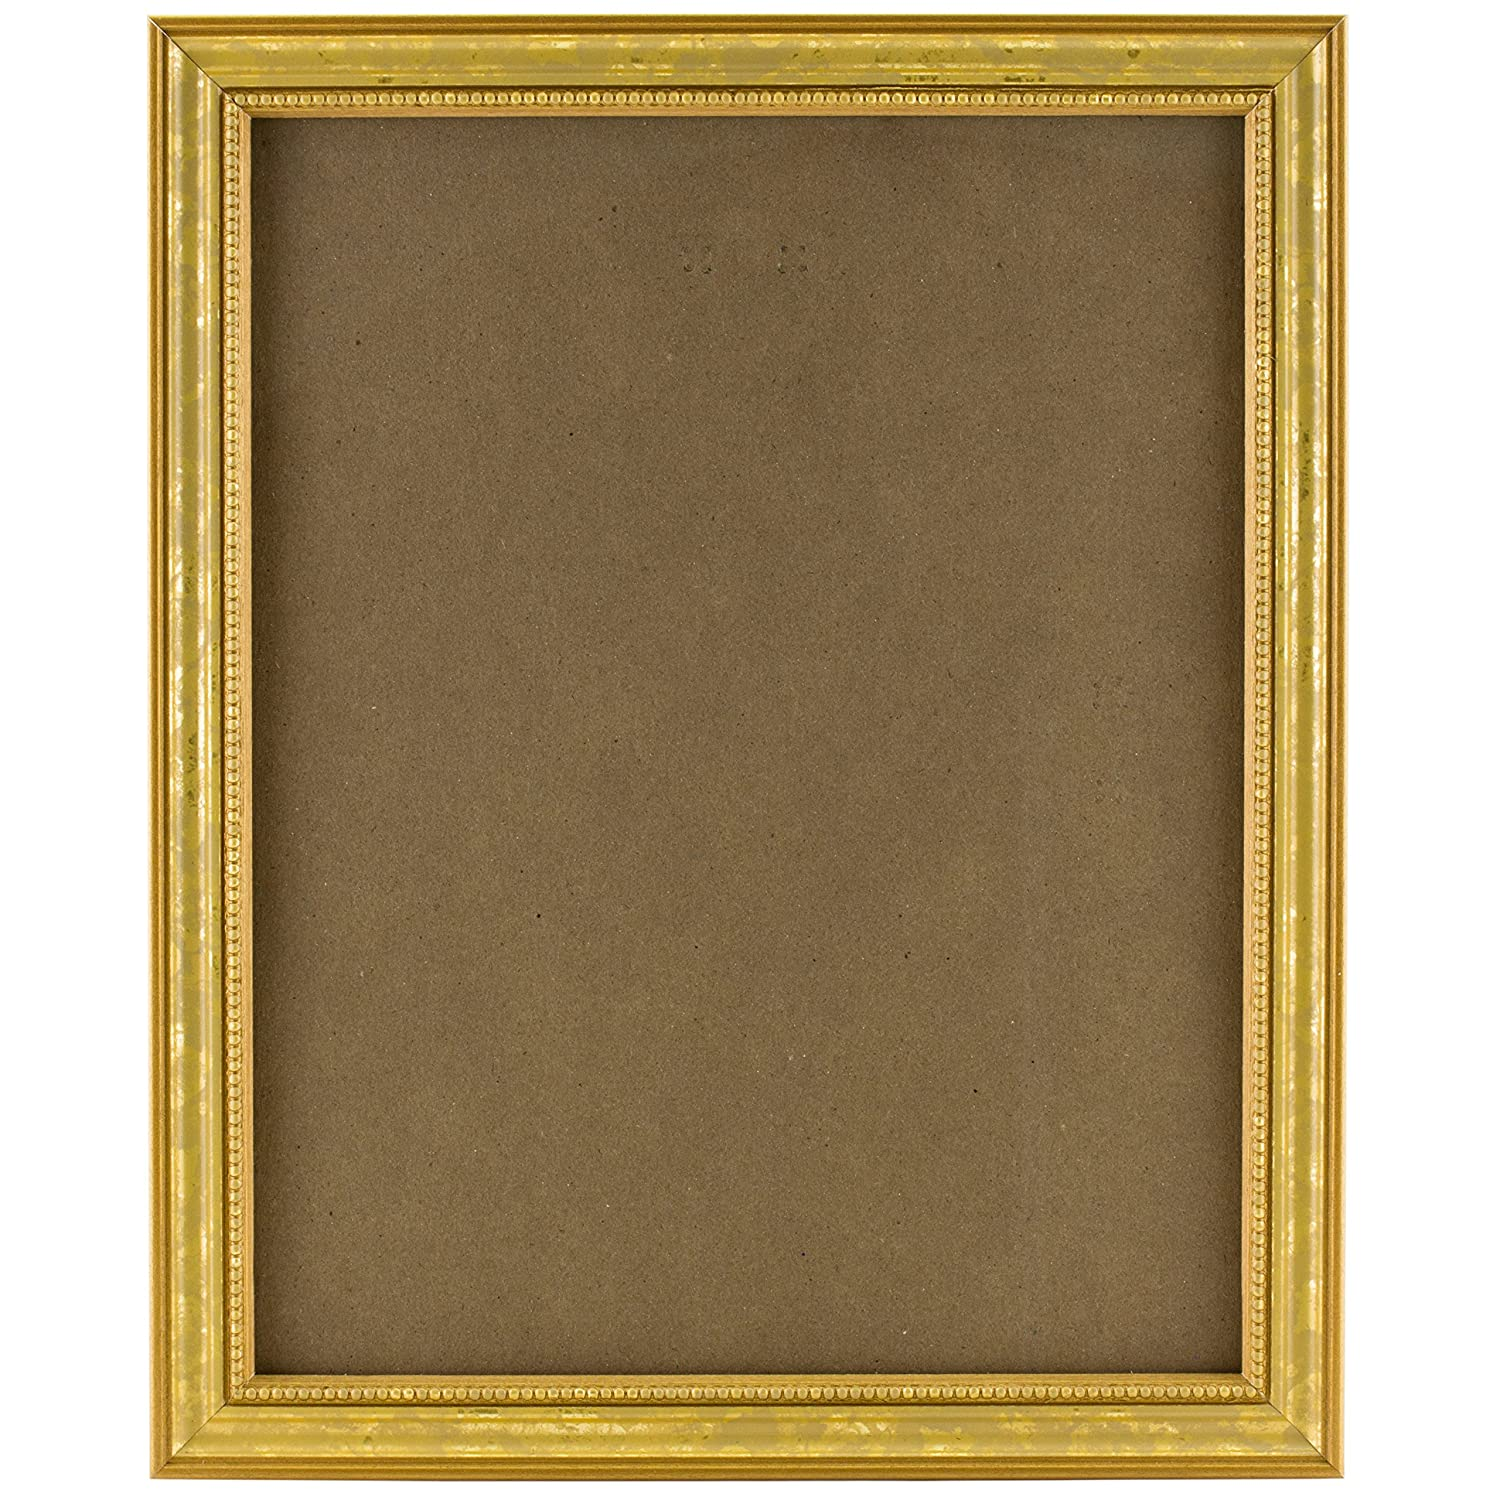 Amazon craig frames 314gd 24 by 36 inch picture frame amazon craig frames 314gd 24 by 36 inch picture frame ornate finish 75 inch wide ornate gold single frames jeuxipadfo Images